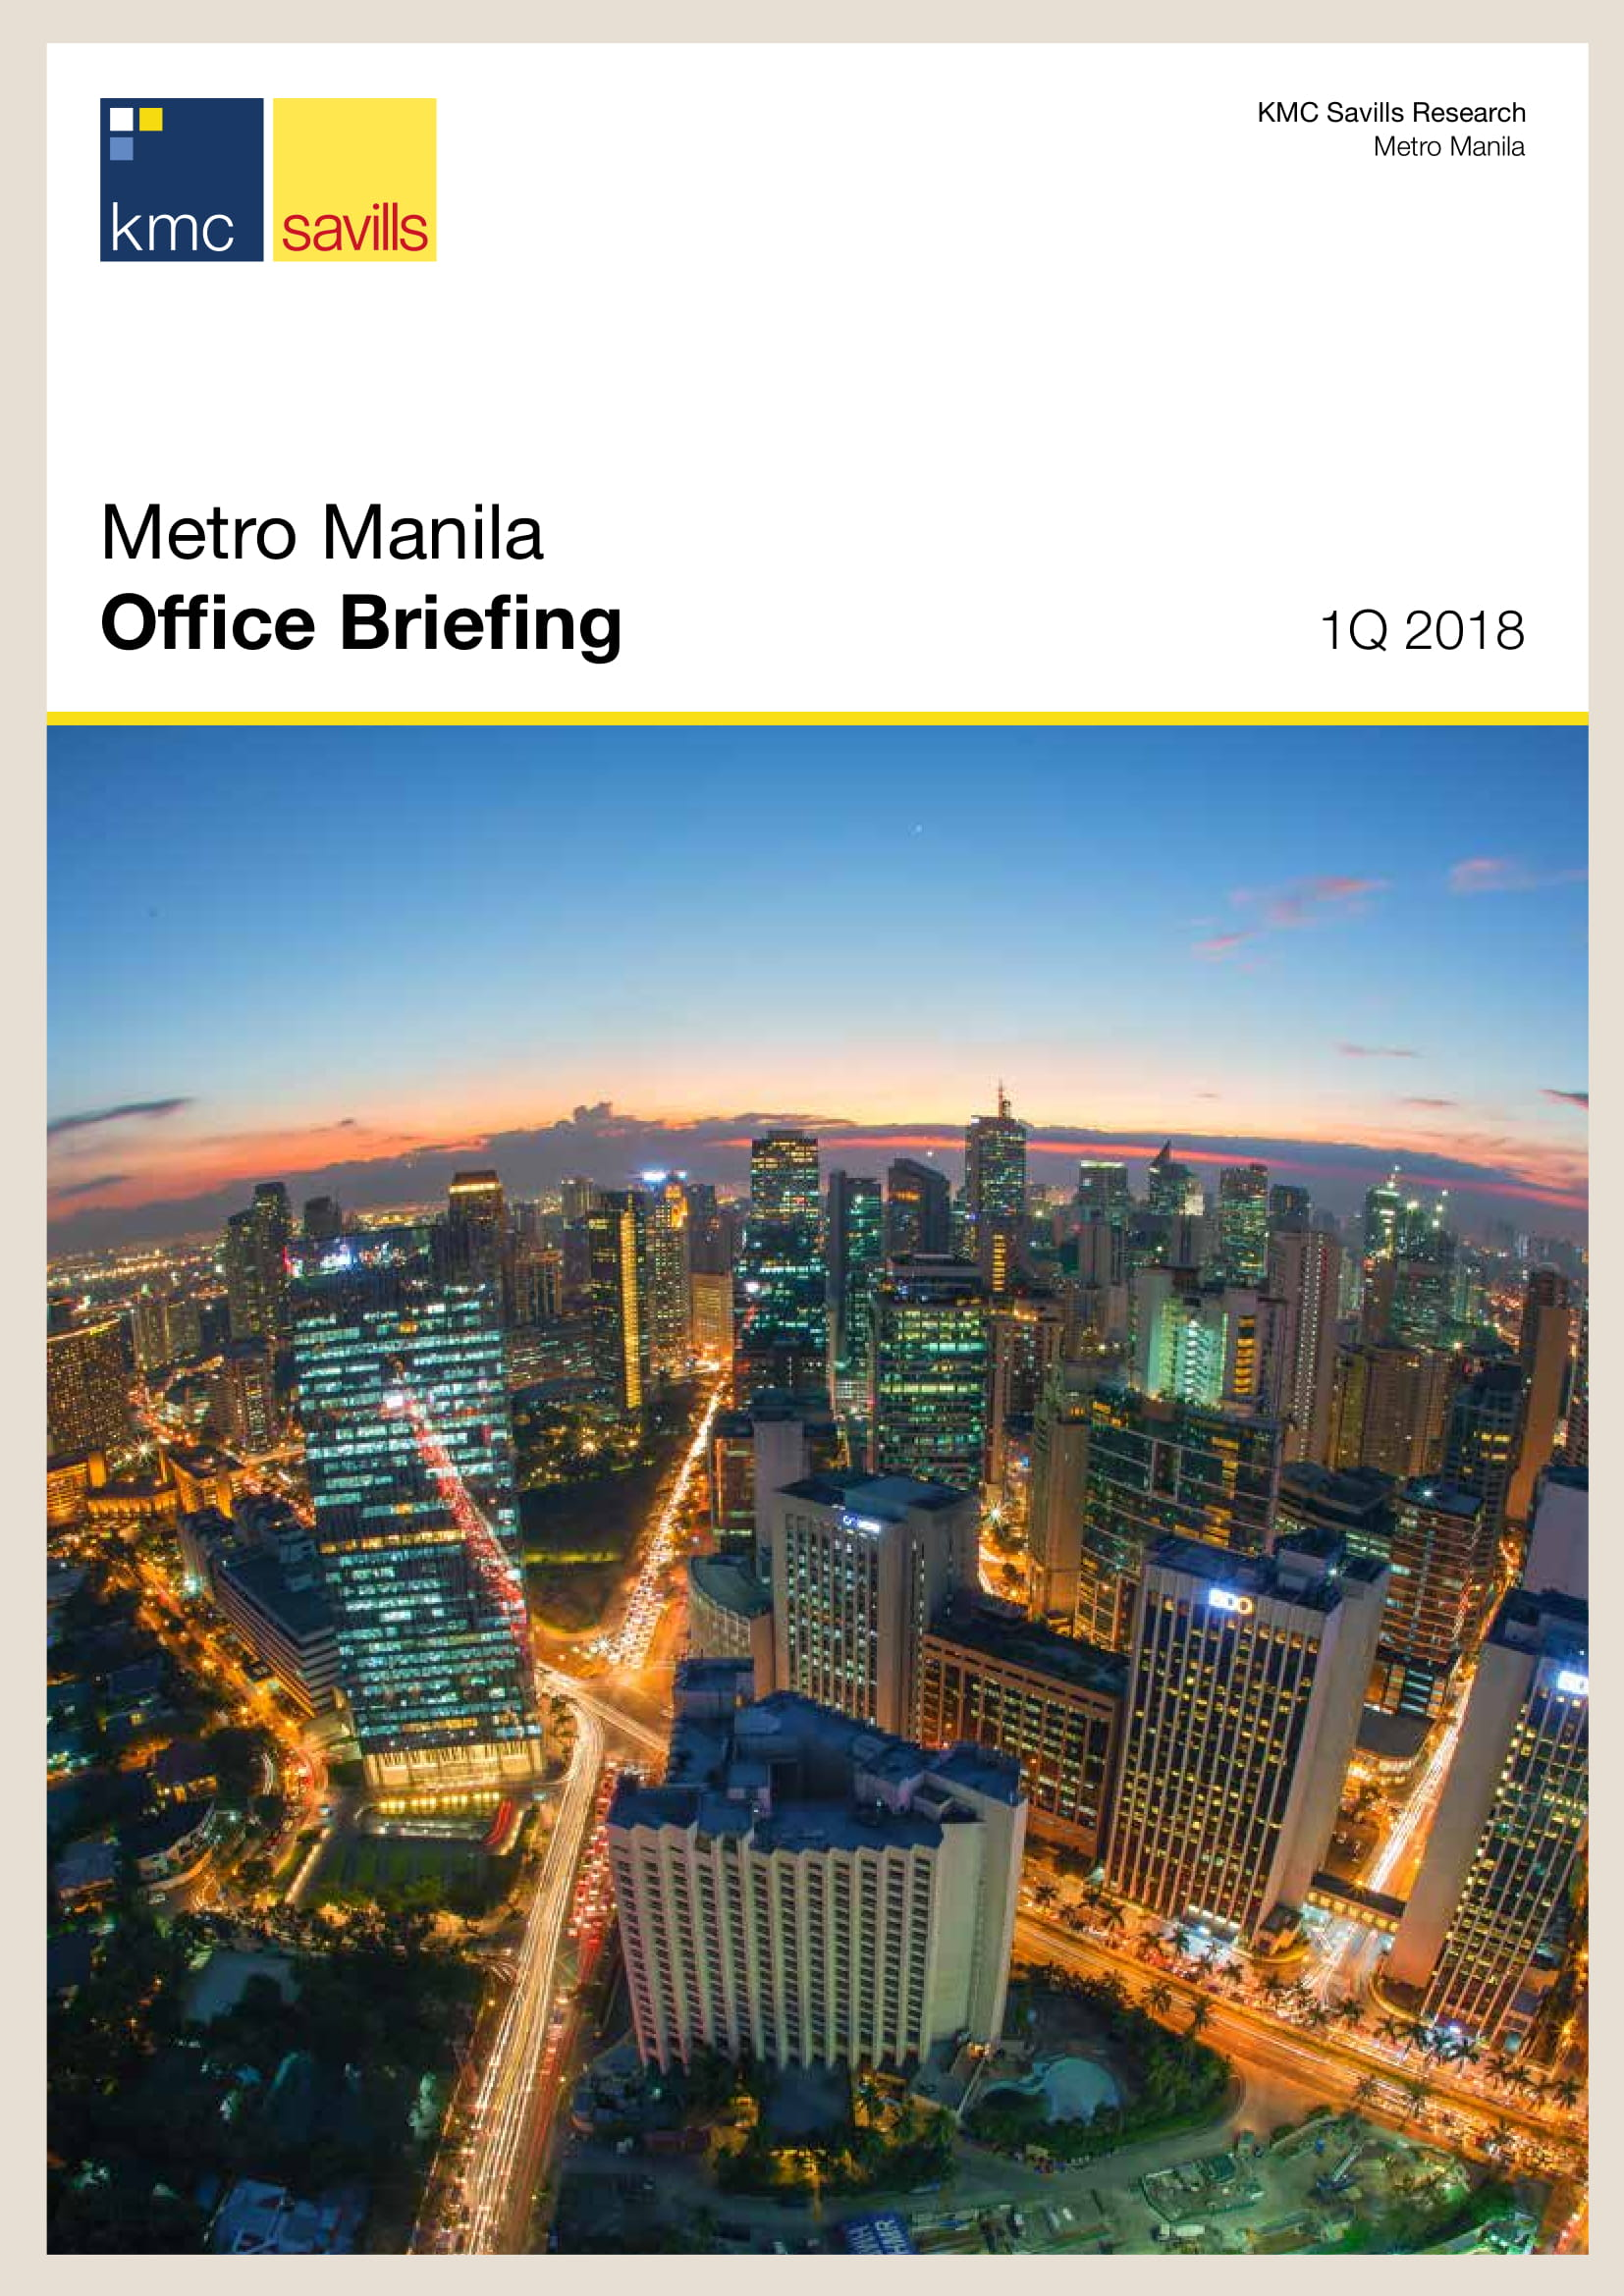 Metro Manila Office Briefing 1Q 2018